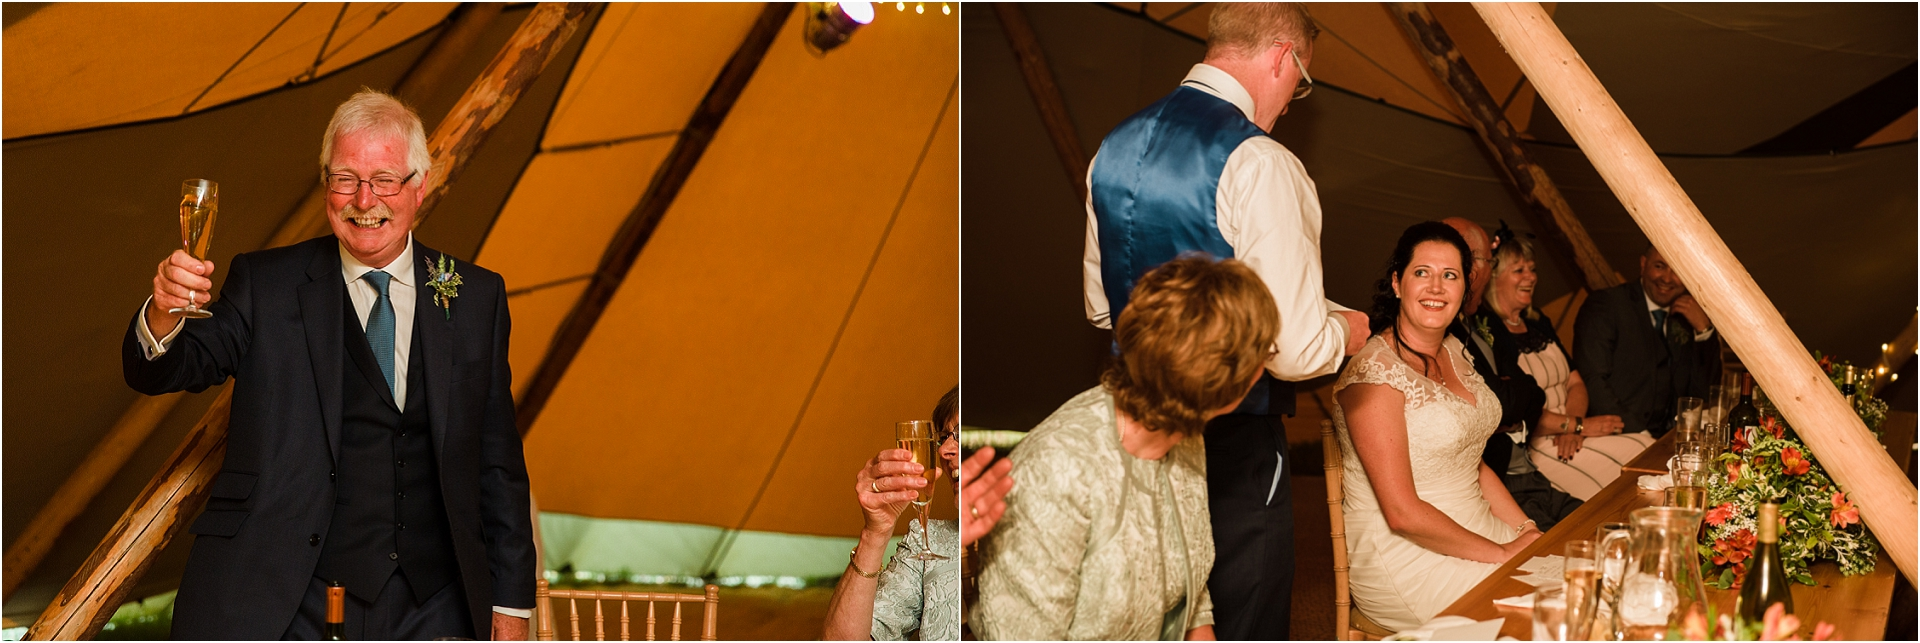 tipi-wedding-photography_0075